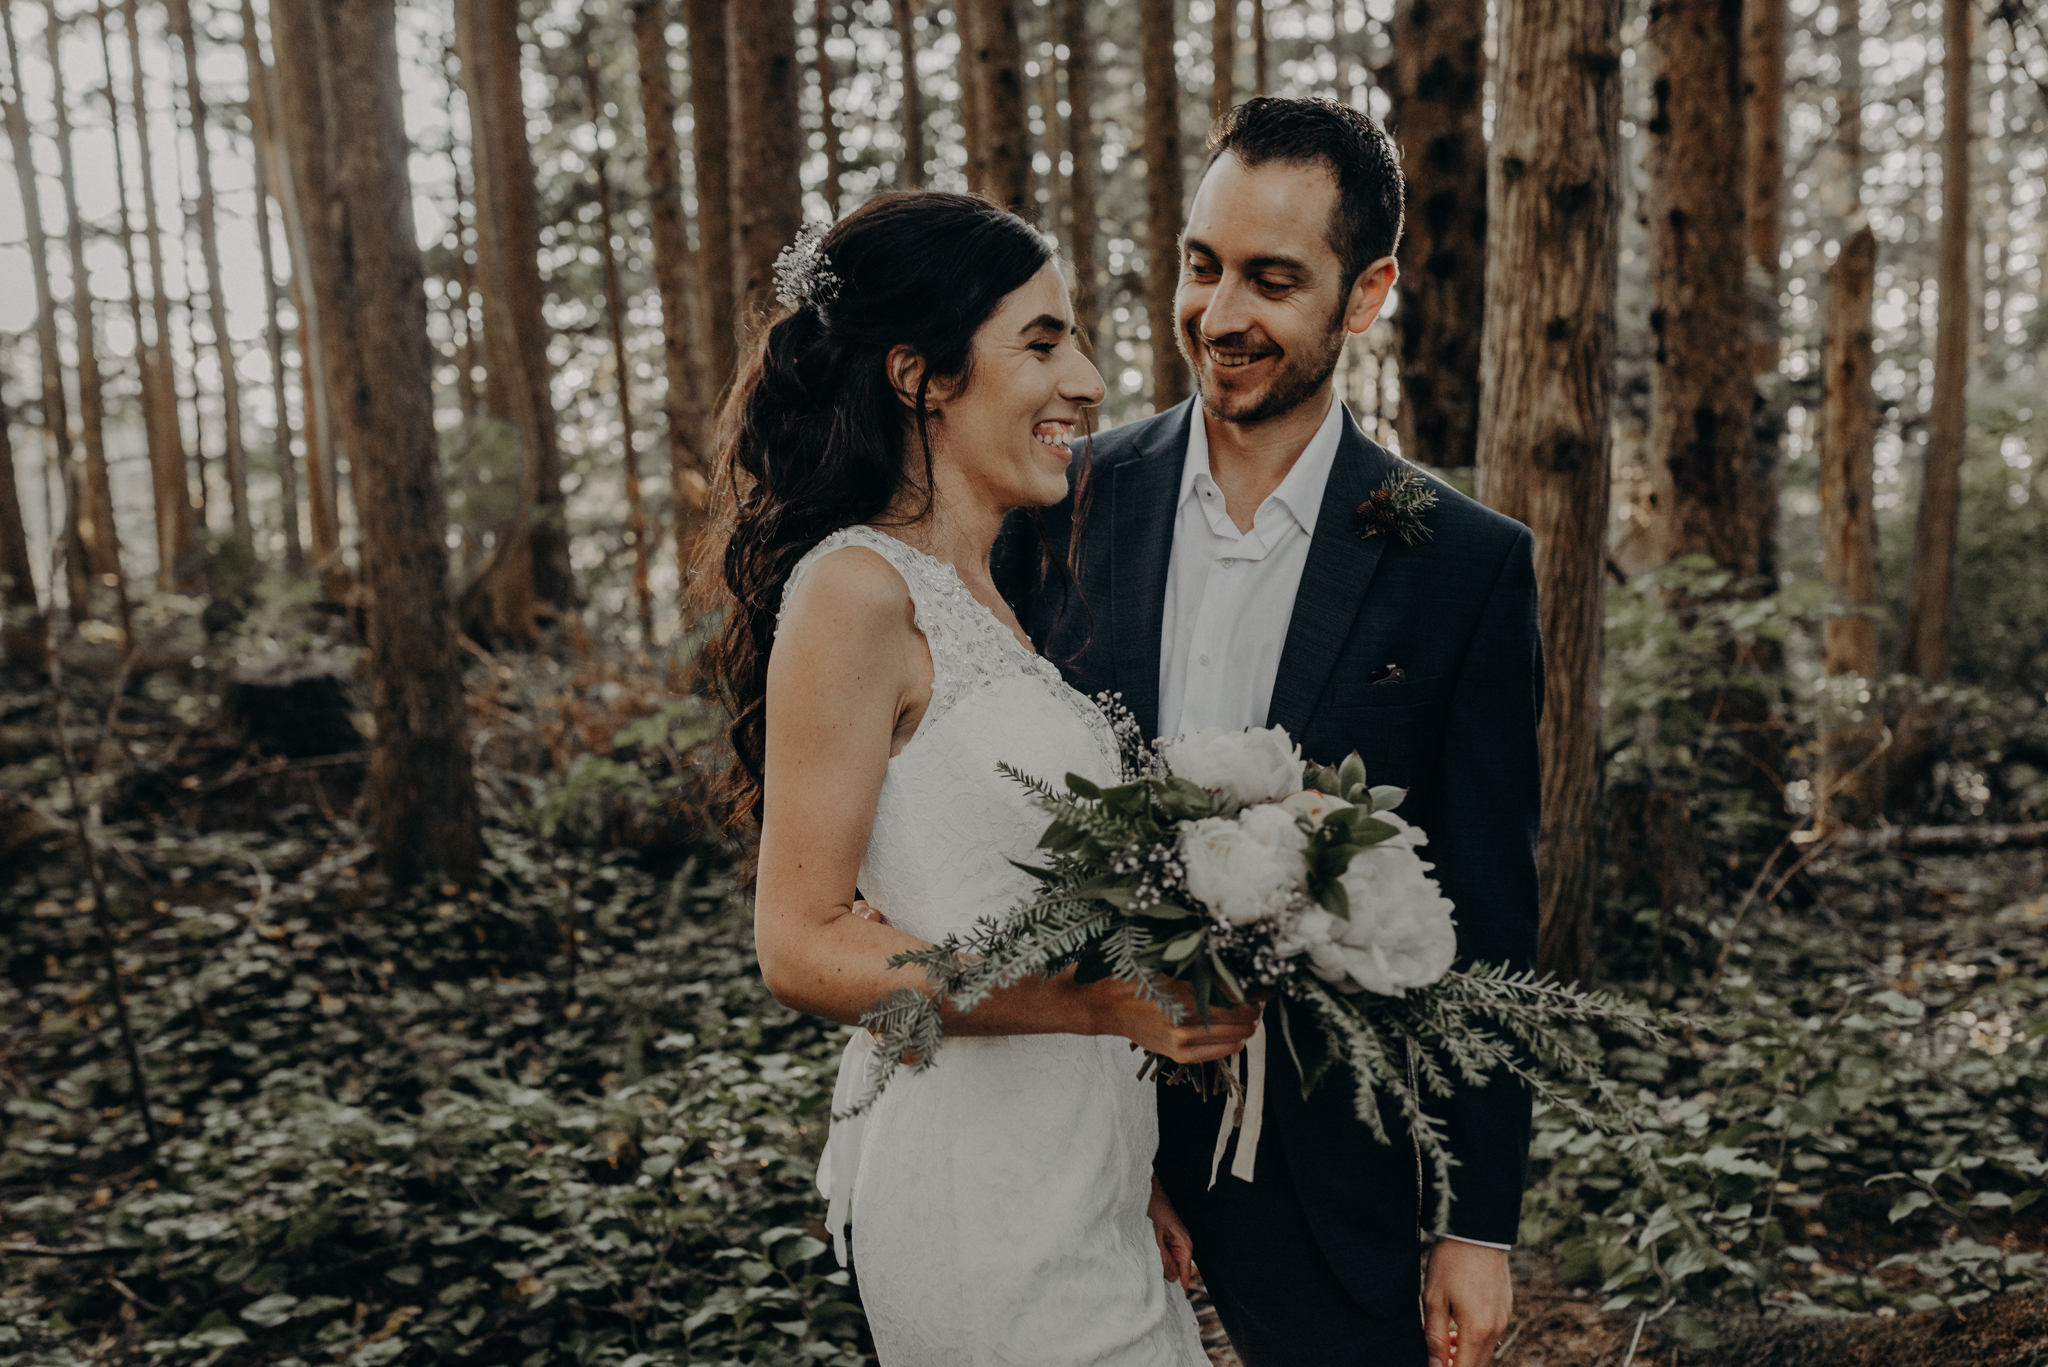 Isaiah + Taylor Photography - Cape Flattery Elopement, Olympia National Forest Wedding Photographer-096.jpg